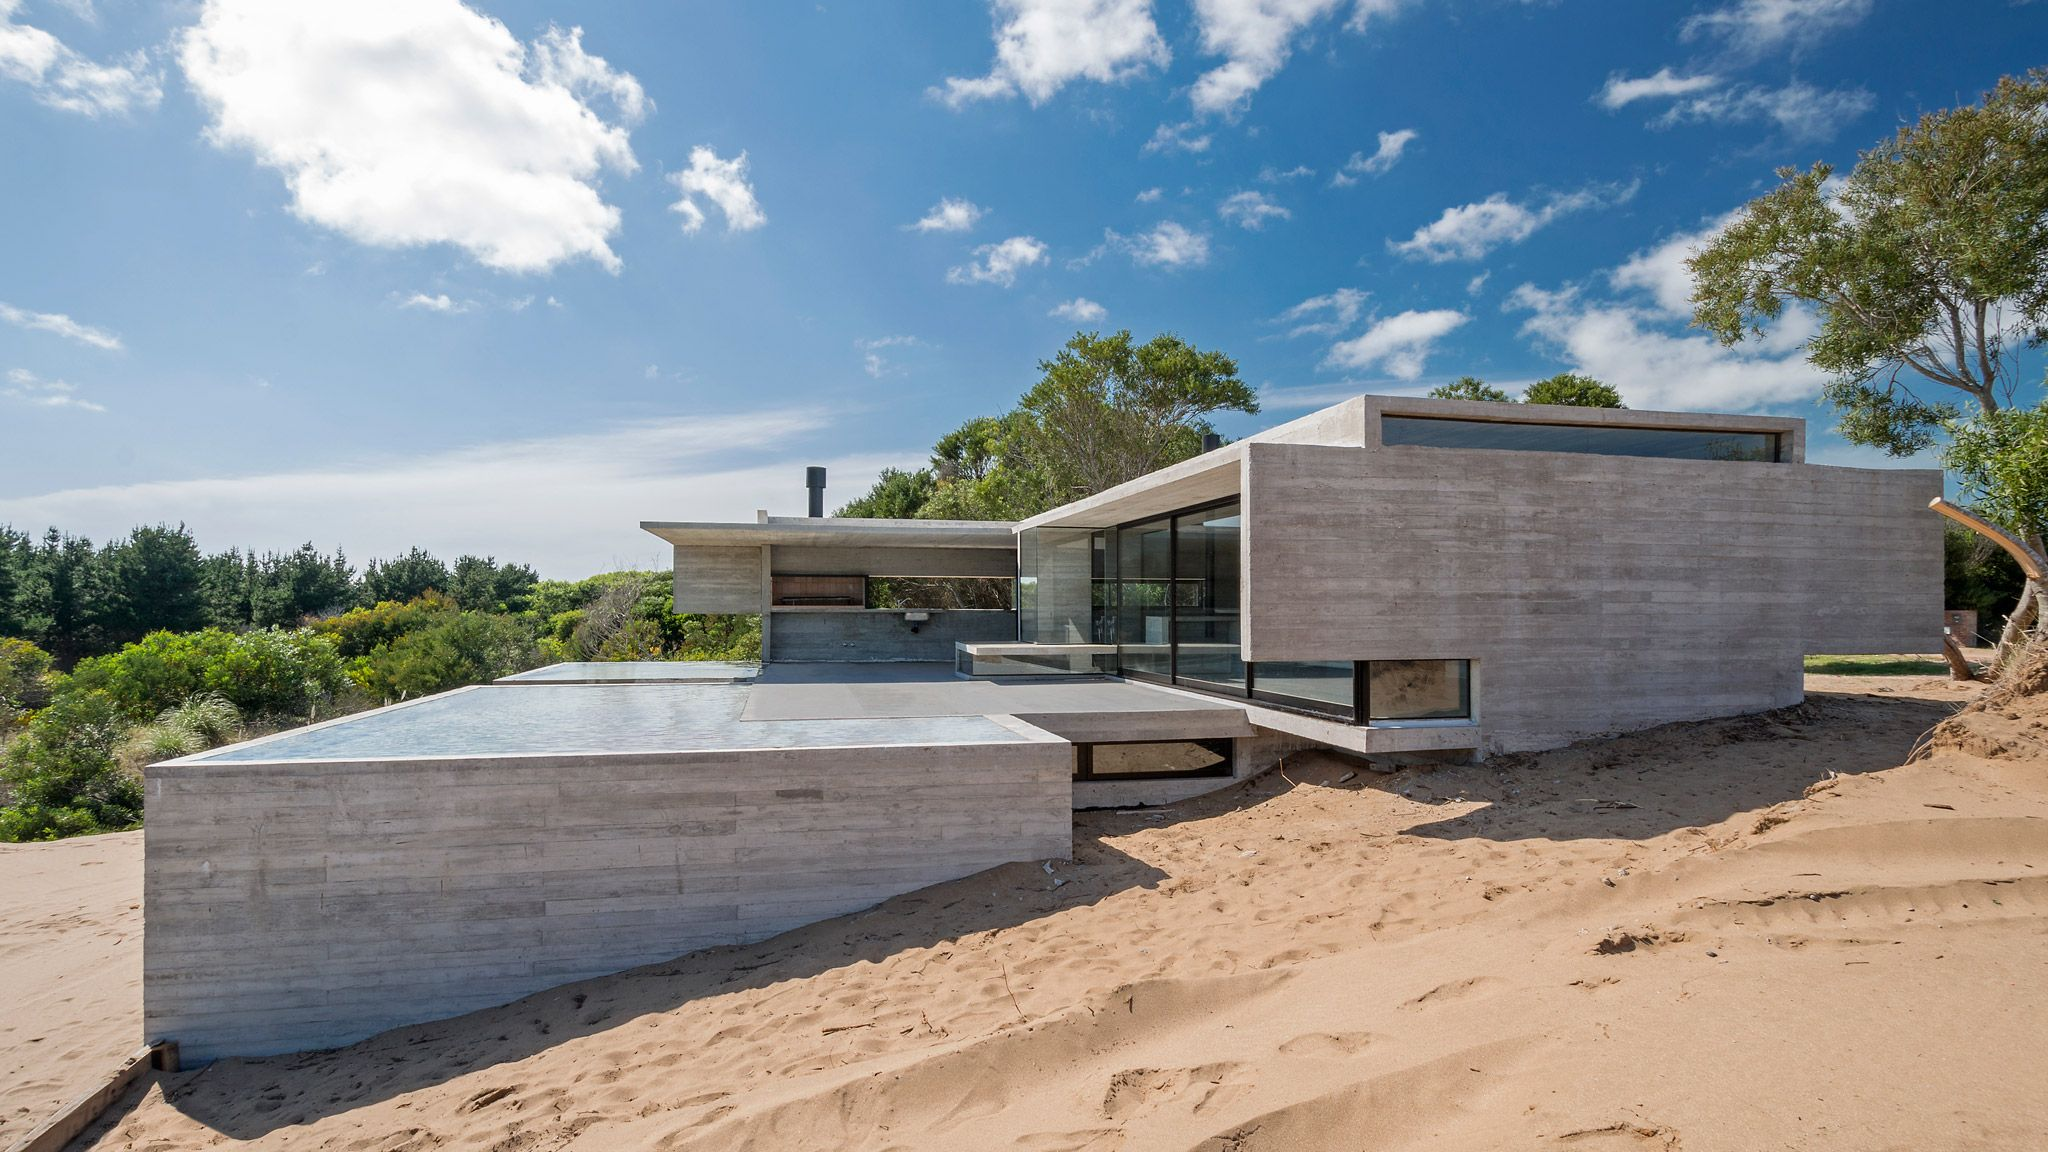 House In The Dune By Luciano Kruk Arquitectos A Concrete Box In Harmony With Nature The Strength Of Architecture From 1998 Architecture House Modern Architecture House Modern House Exterior